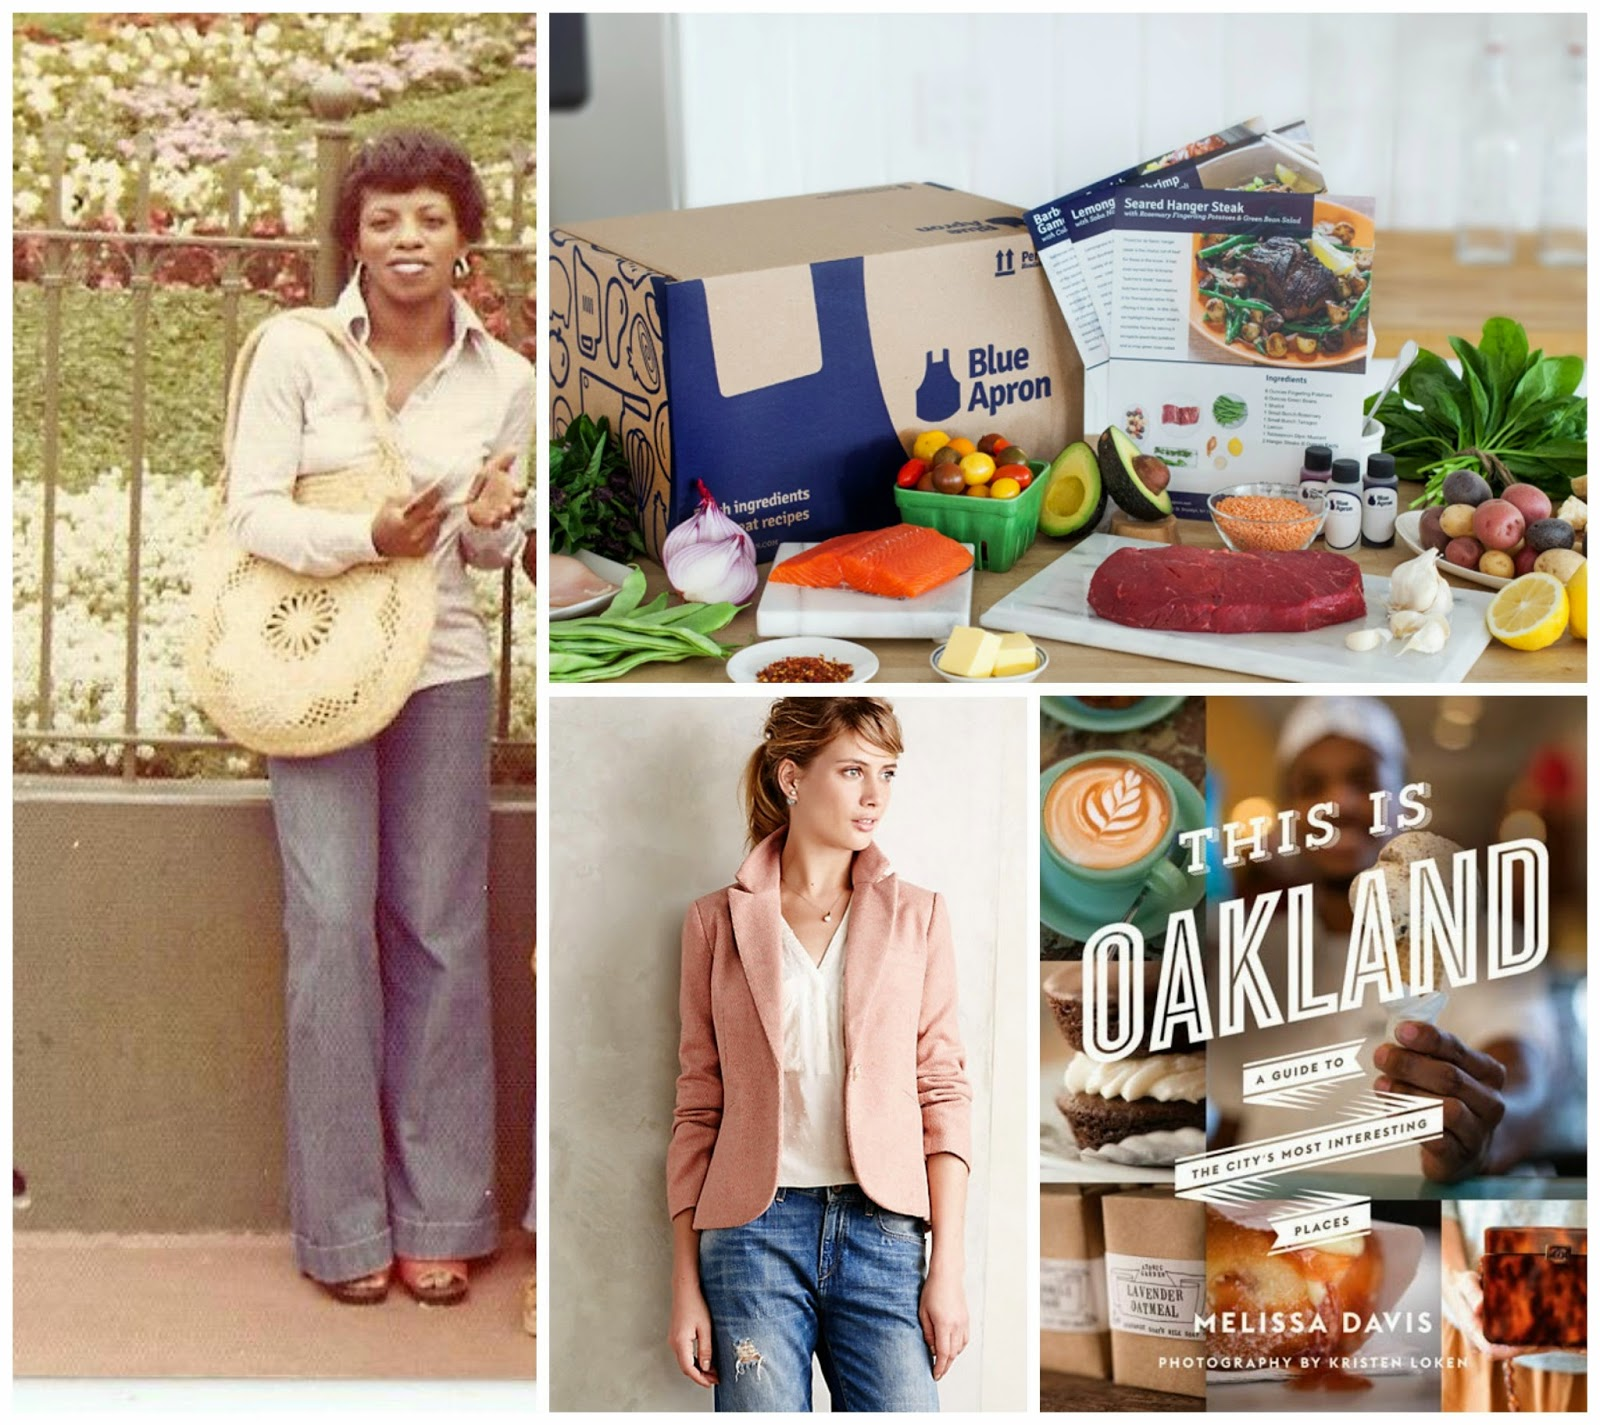 Blue apron gift - Gift Ideas For My Mom And Sister Blue Apron